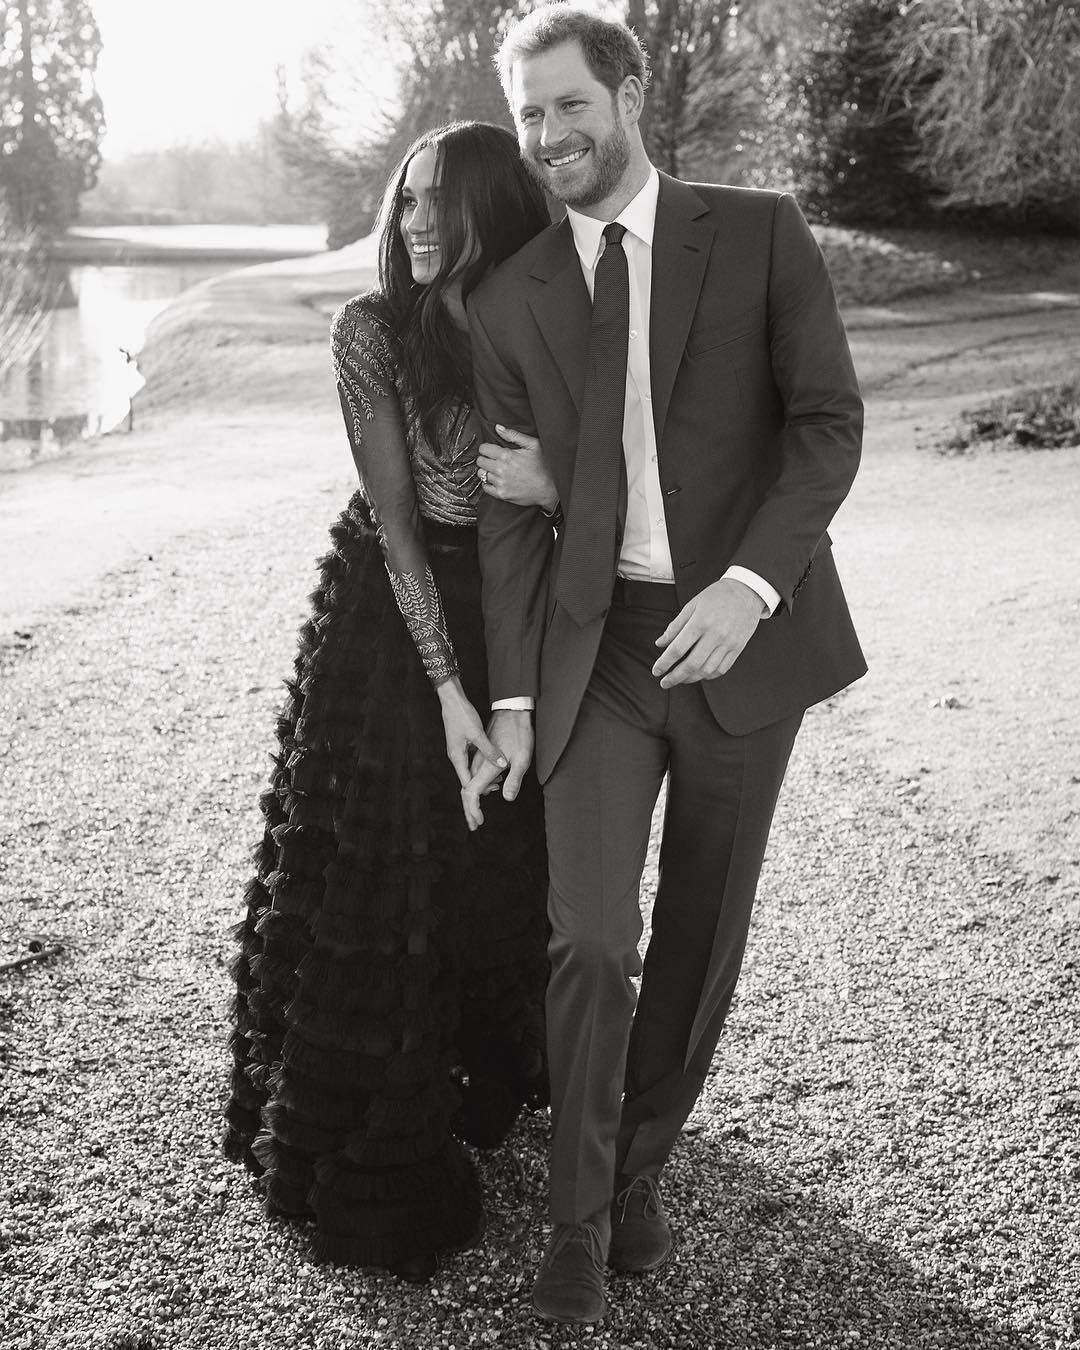 Meghan Markle and Prince Harry Candid Engagement Photo